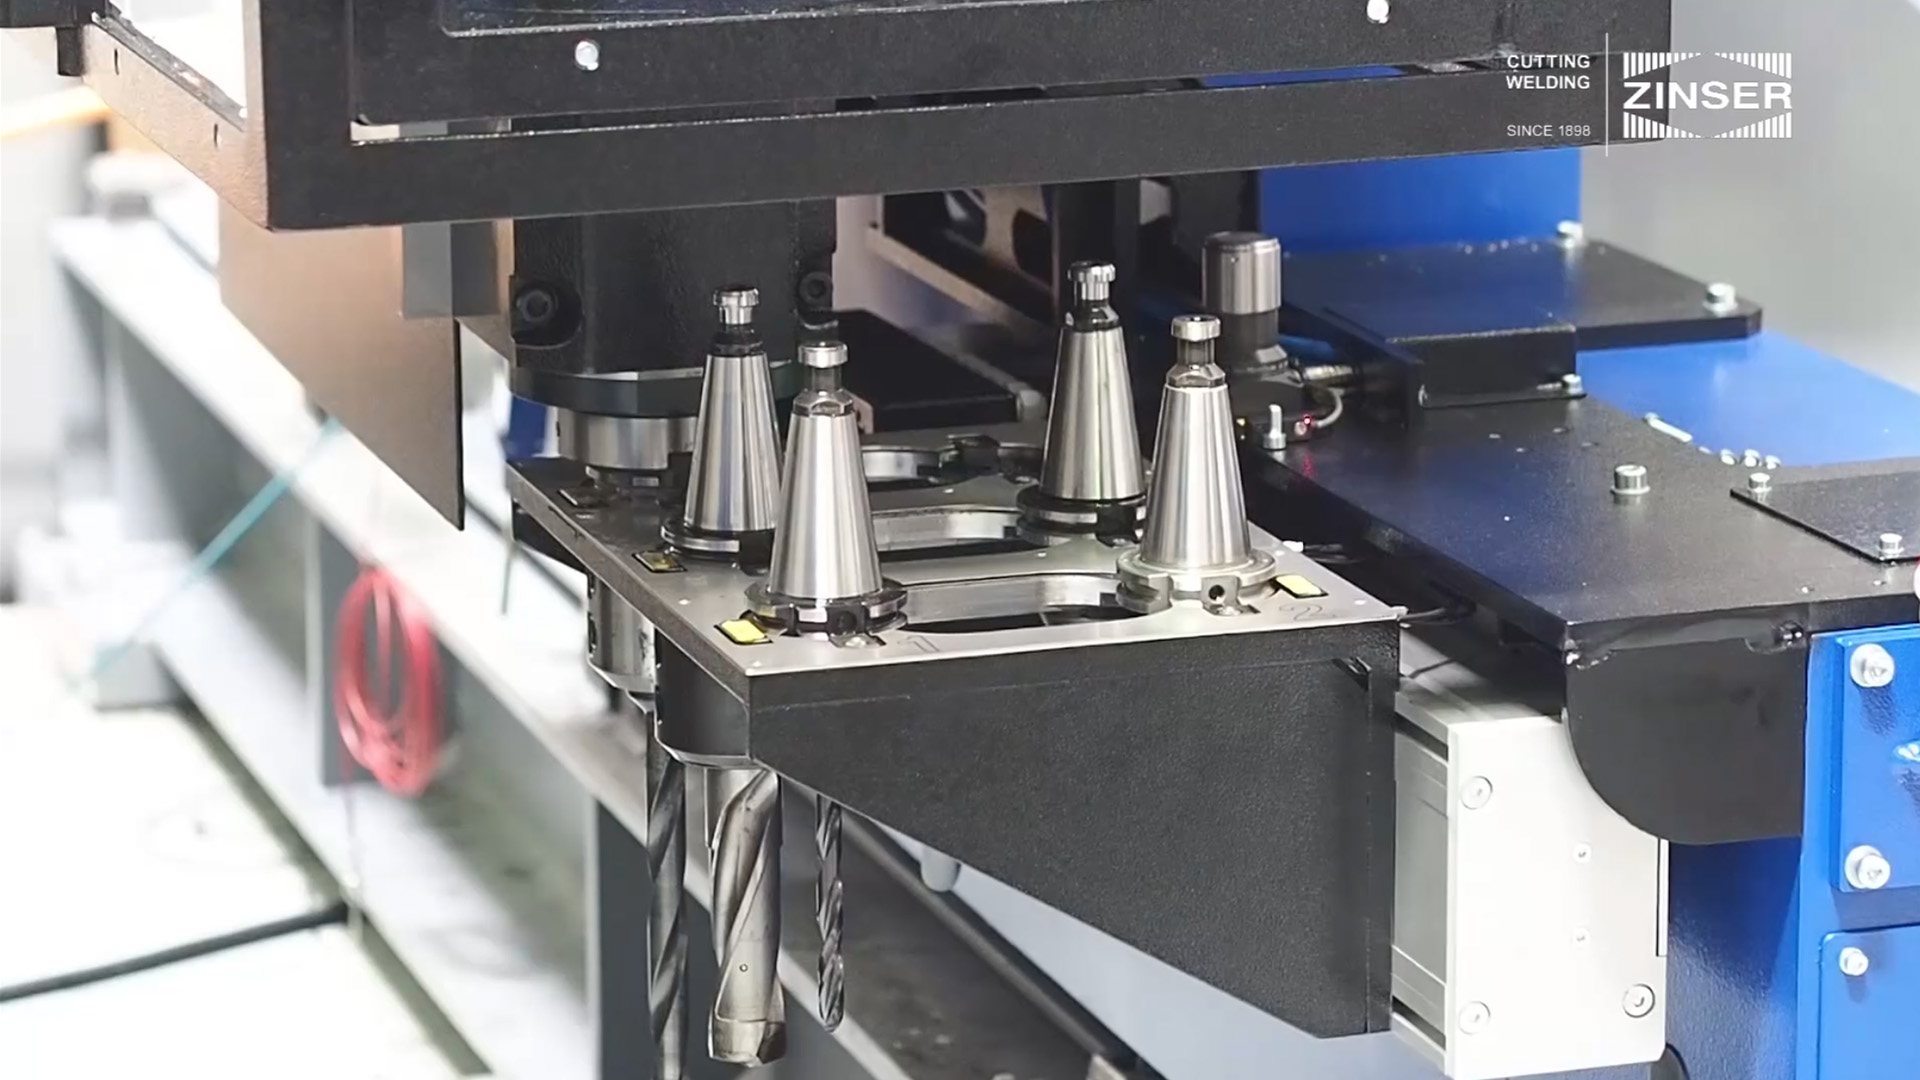 Tool changer für drilling unit on plasma and oxy-fuel cutting machines